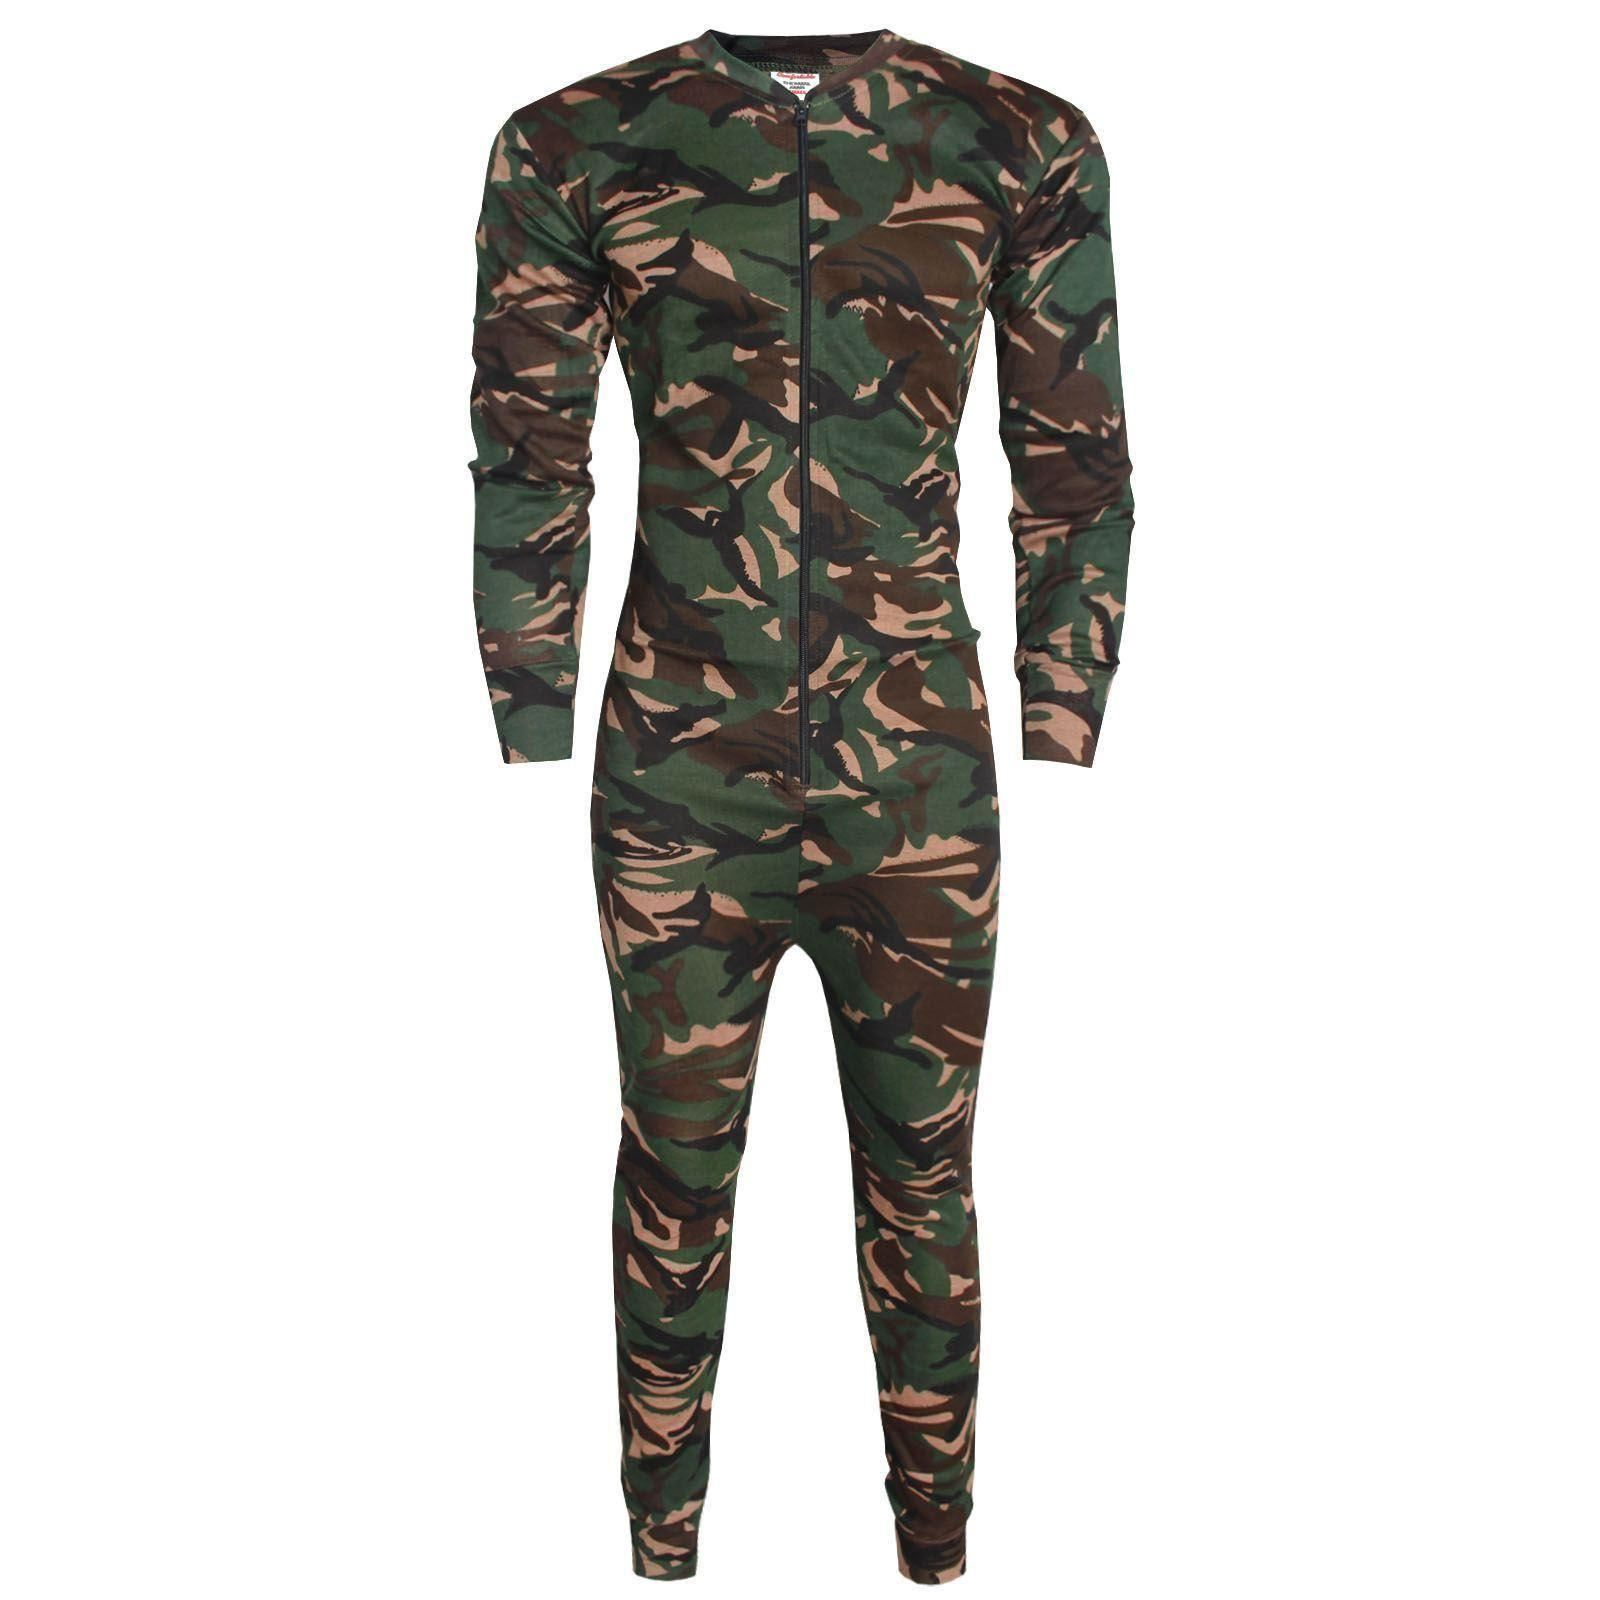 OCTAVE® Mens Thermal Underwear All In One Union Suit / Thermal Body Suit. British designed full body Union Suit. Made from soft fully brushed thermal fabric for extra warmth. Ribbed fabric for added stretch and comfort. Cosy & warm but lightweight thermal material. Featuring two-way/5(34).